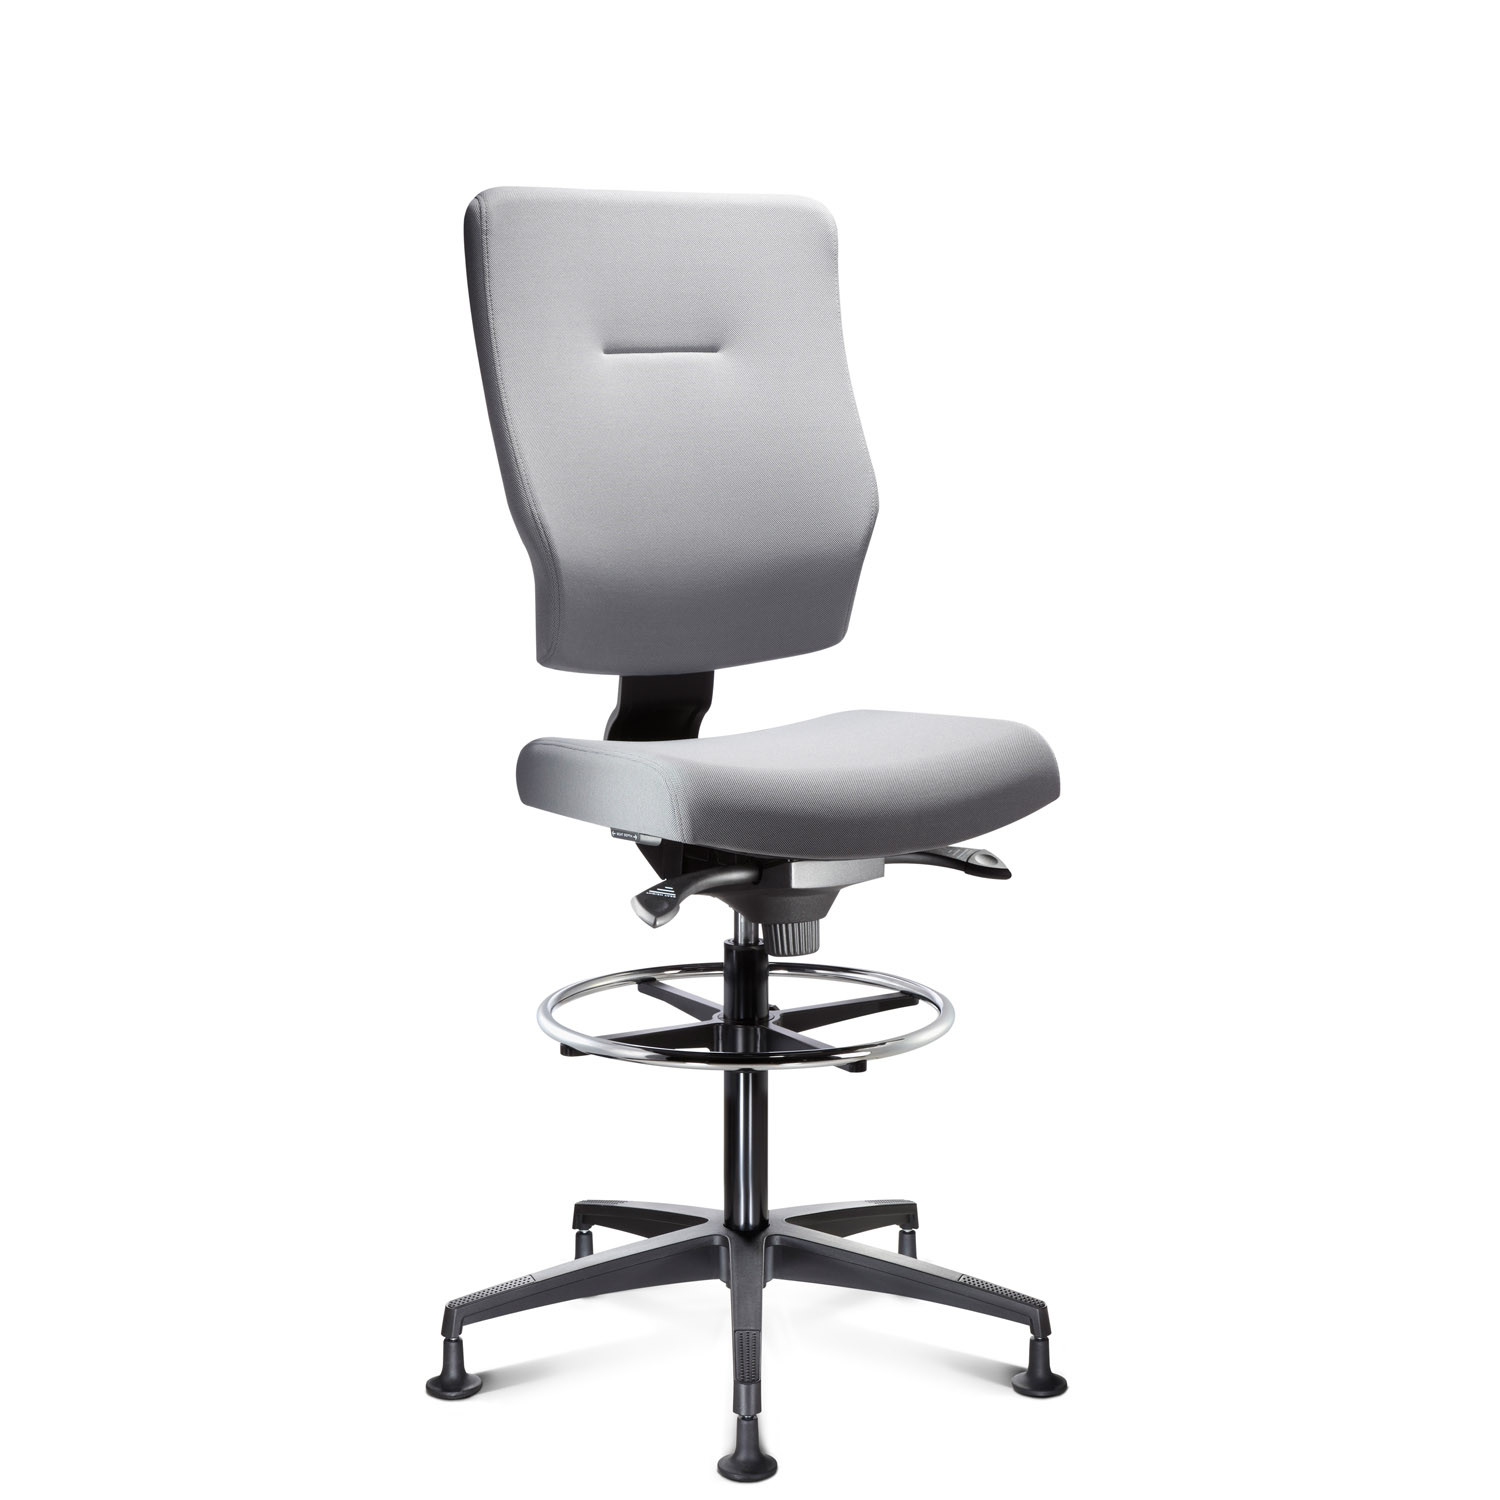 Connection IS Draughtsman's Chair